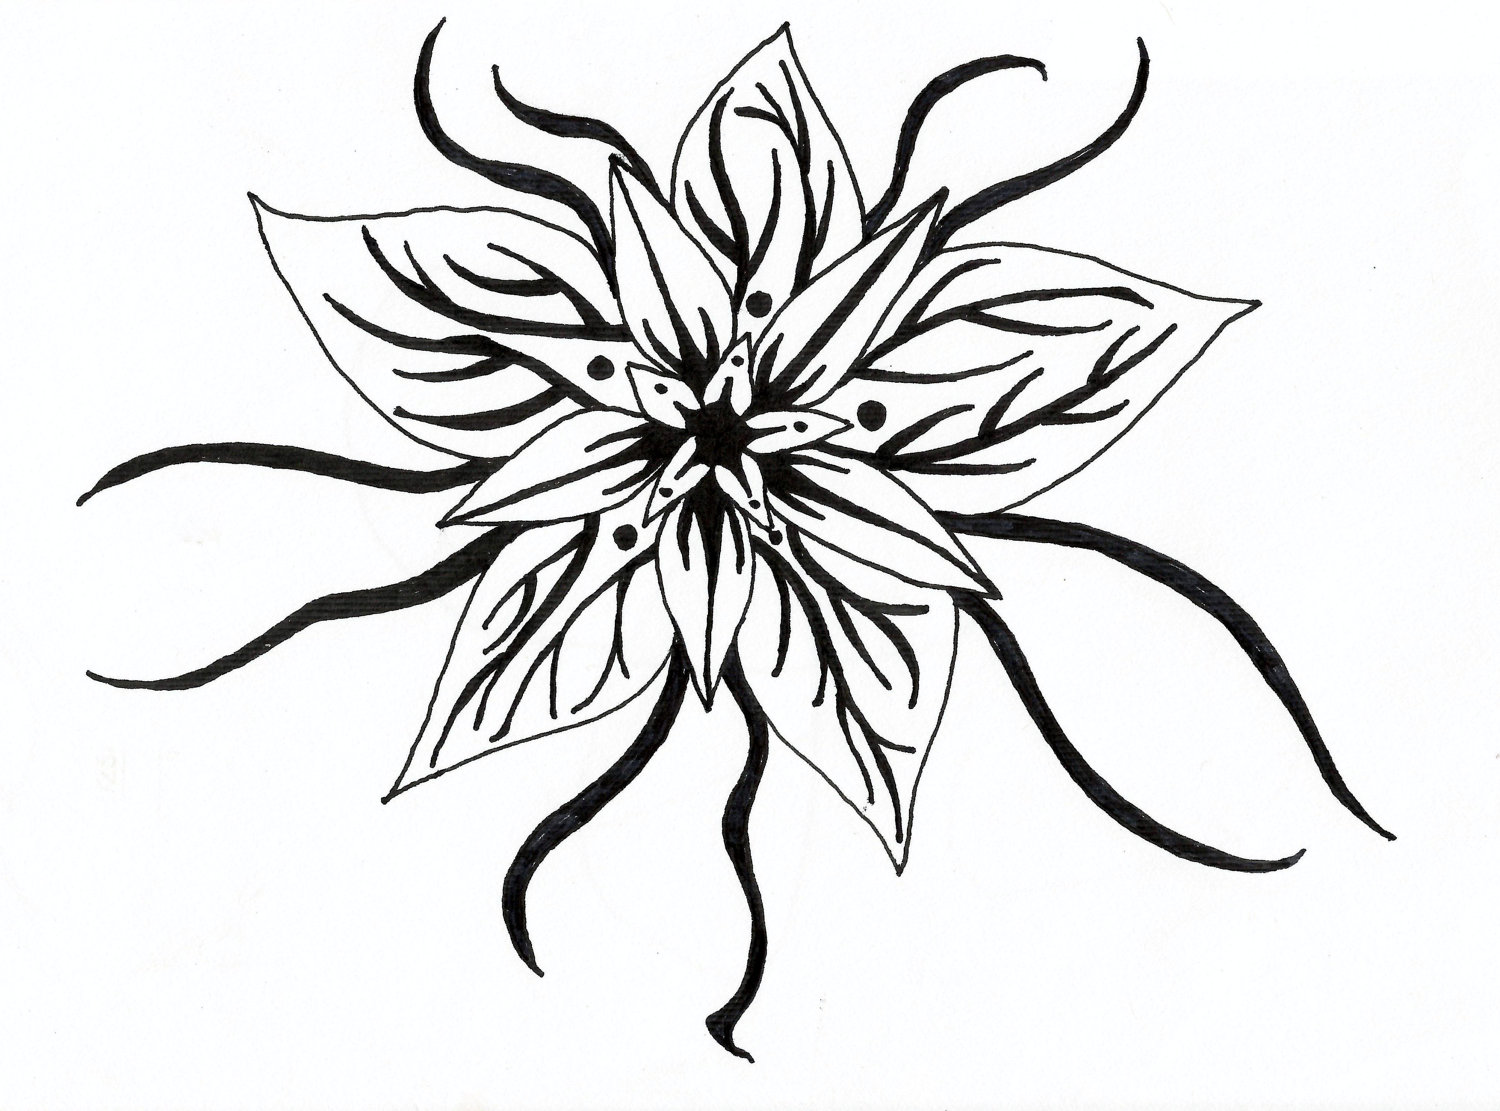 Flowers black and white drawing clipart best for Simple black and white drawing ideas